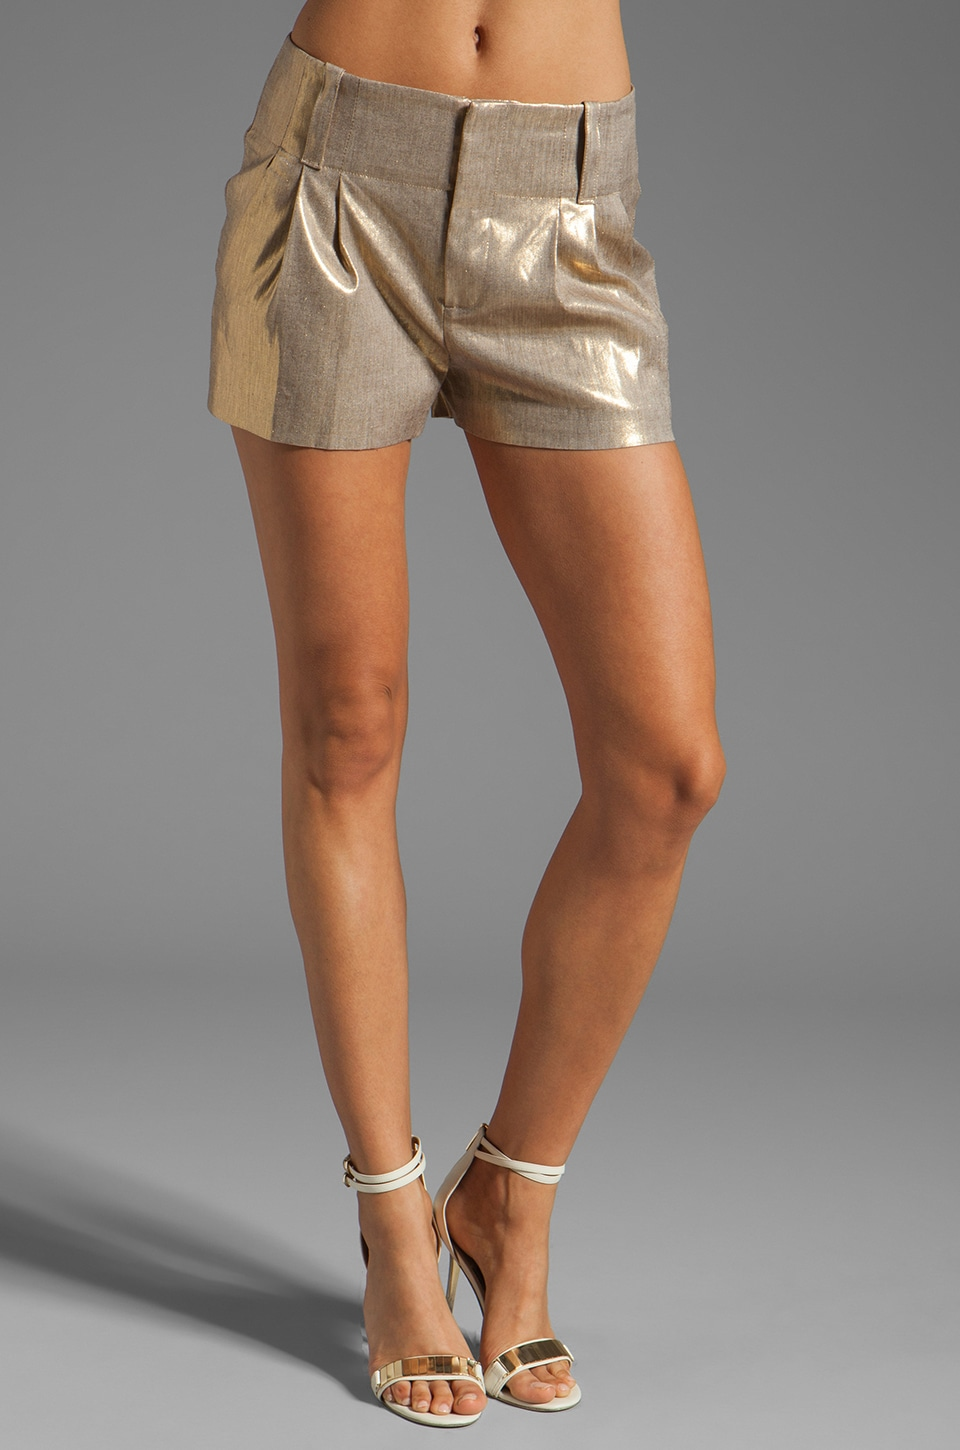 Alice + Olivia Anders Short in Bronze